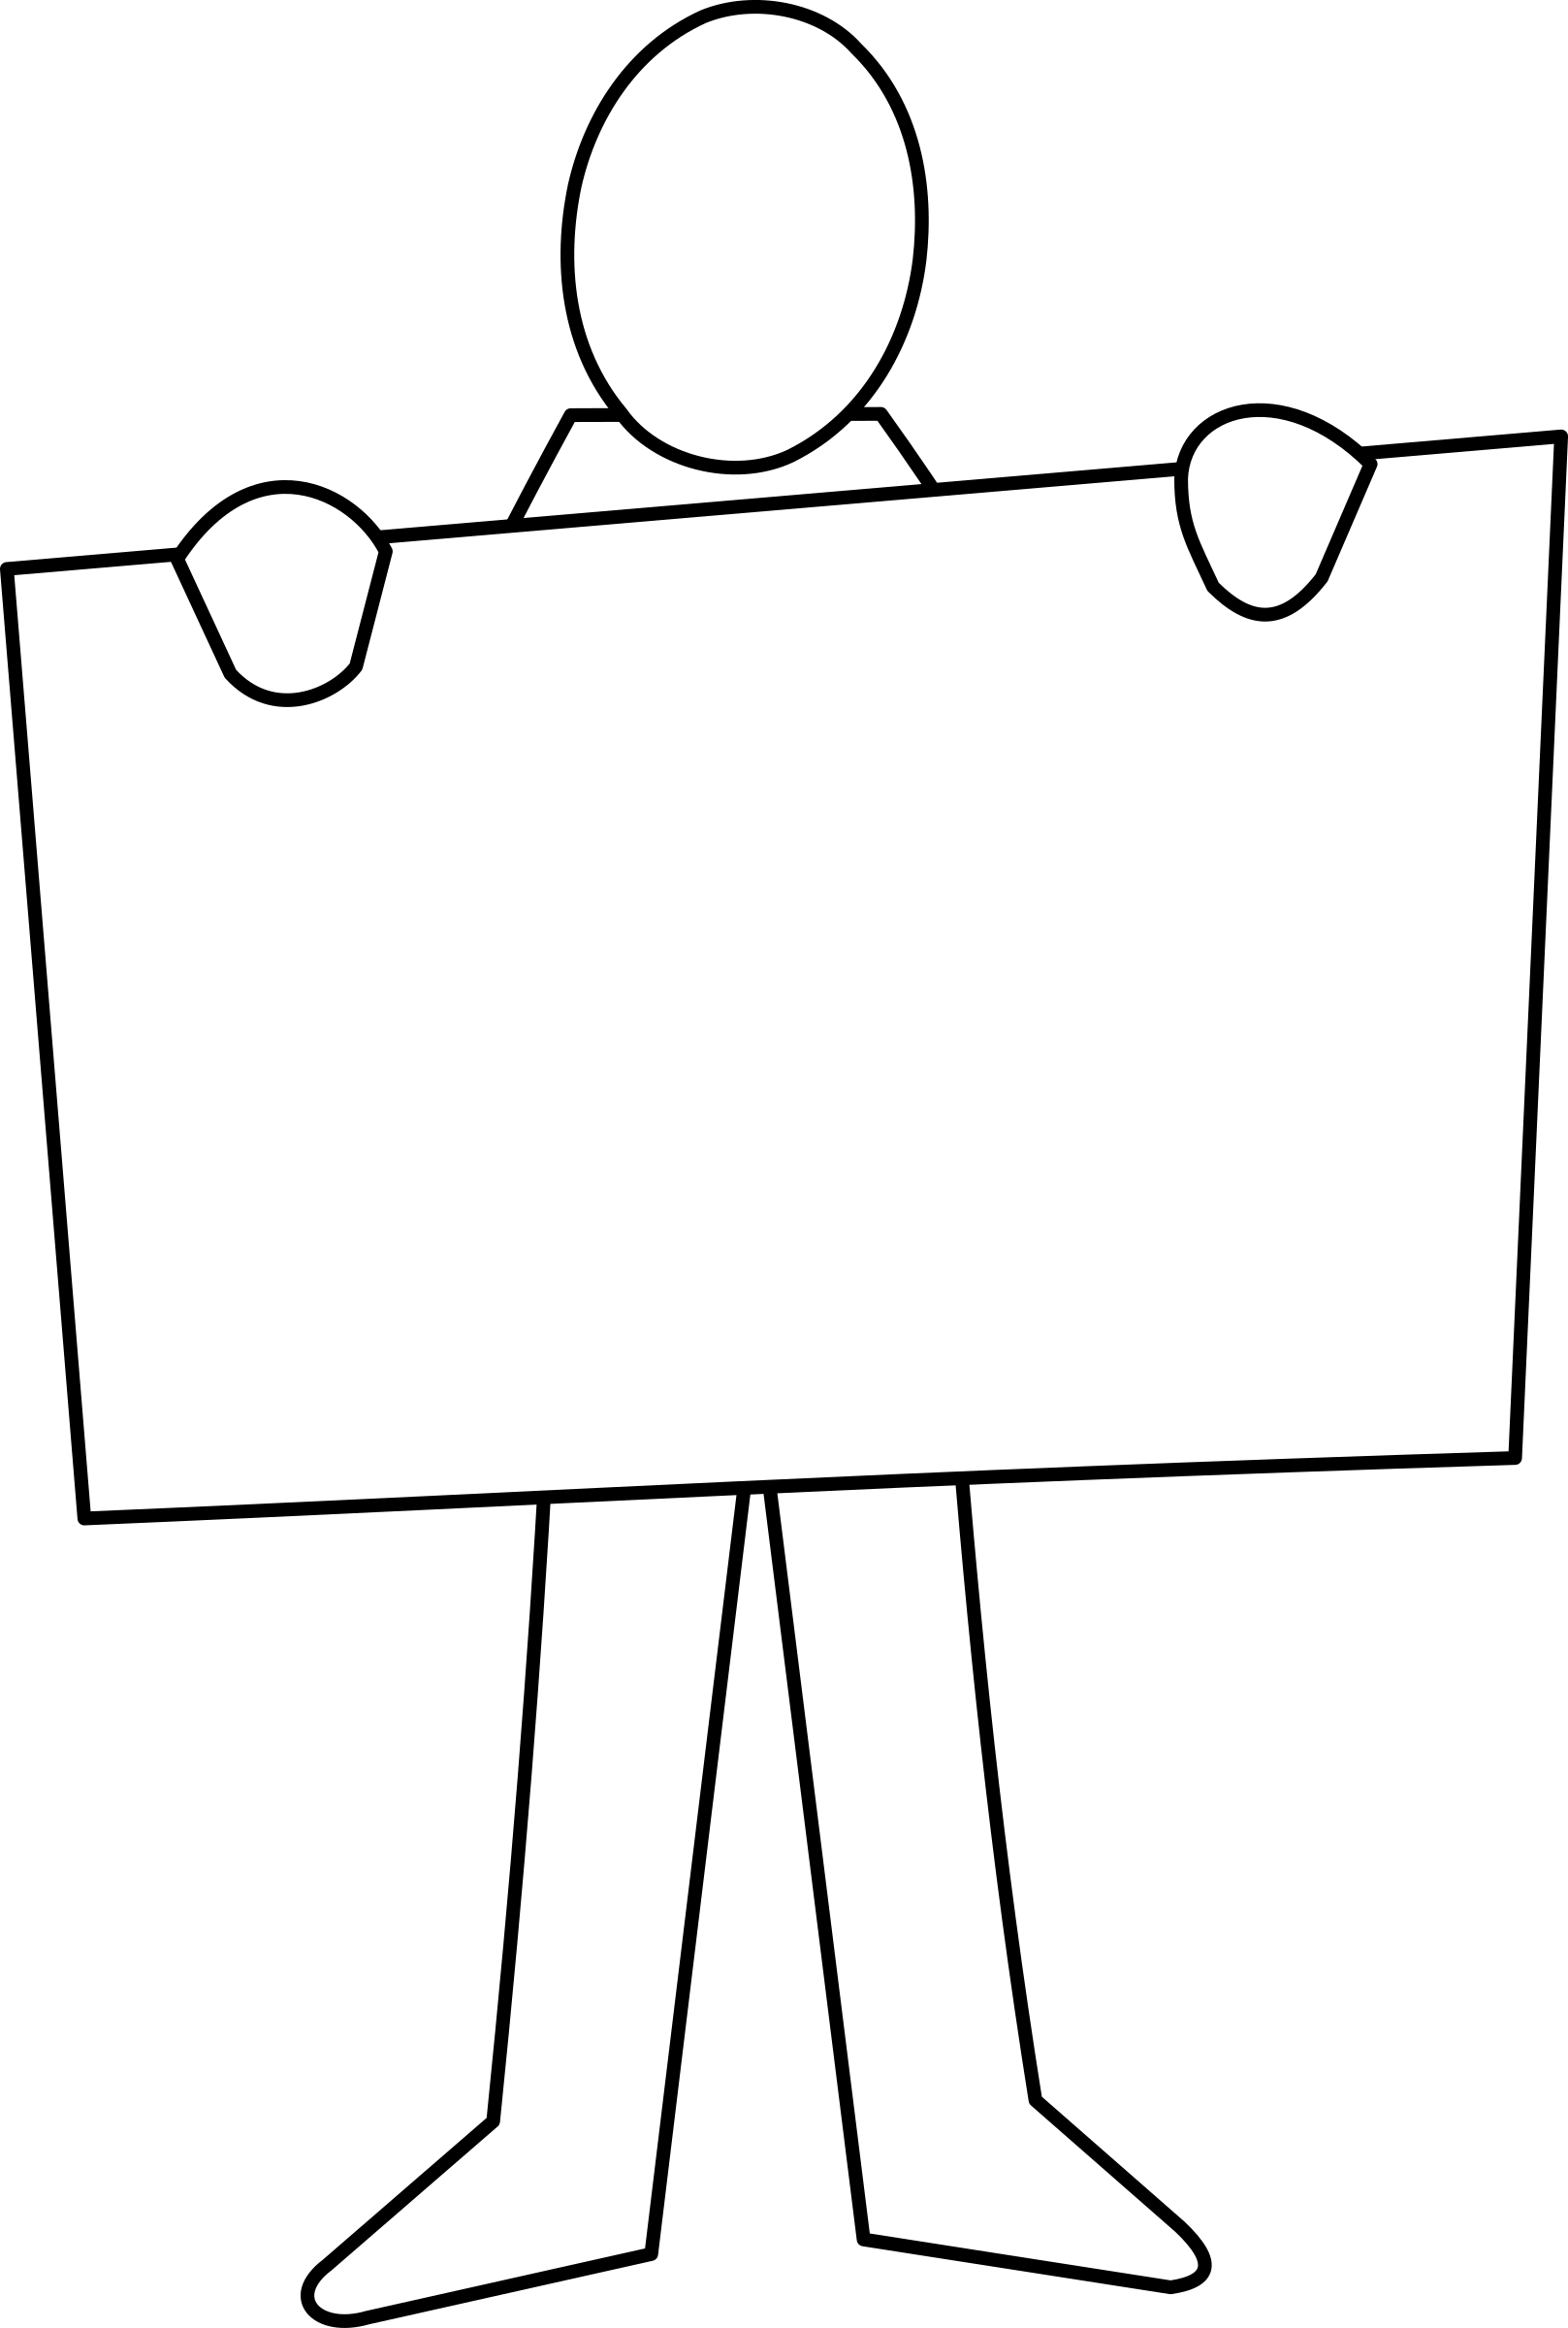 Easel clipart blank poster, Easel blank poster Transparent.